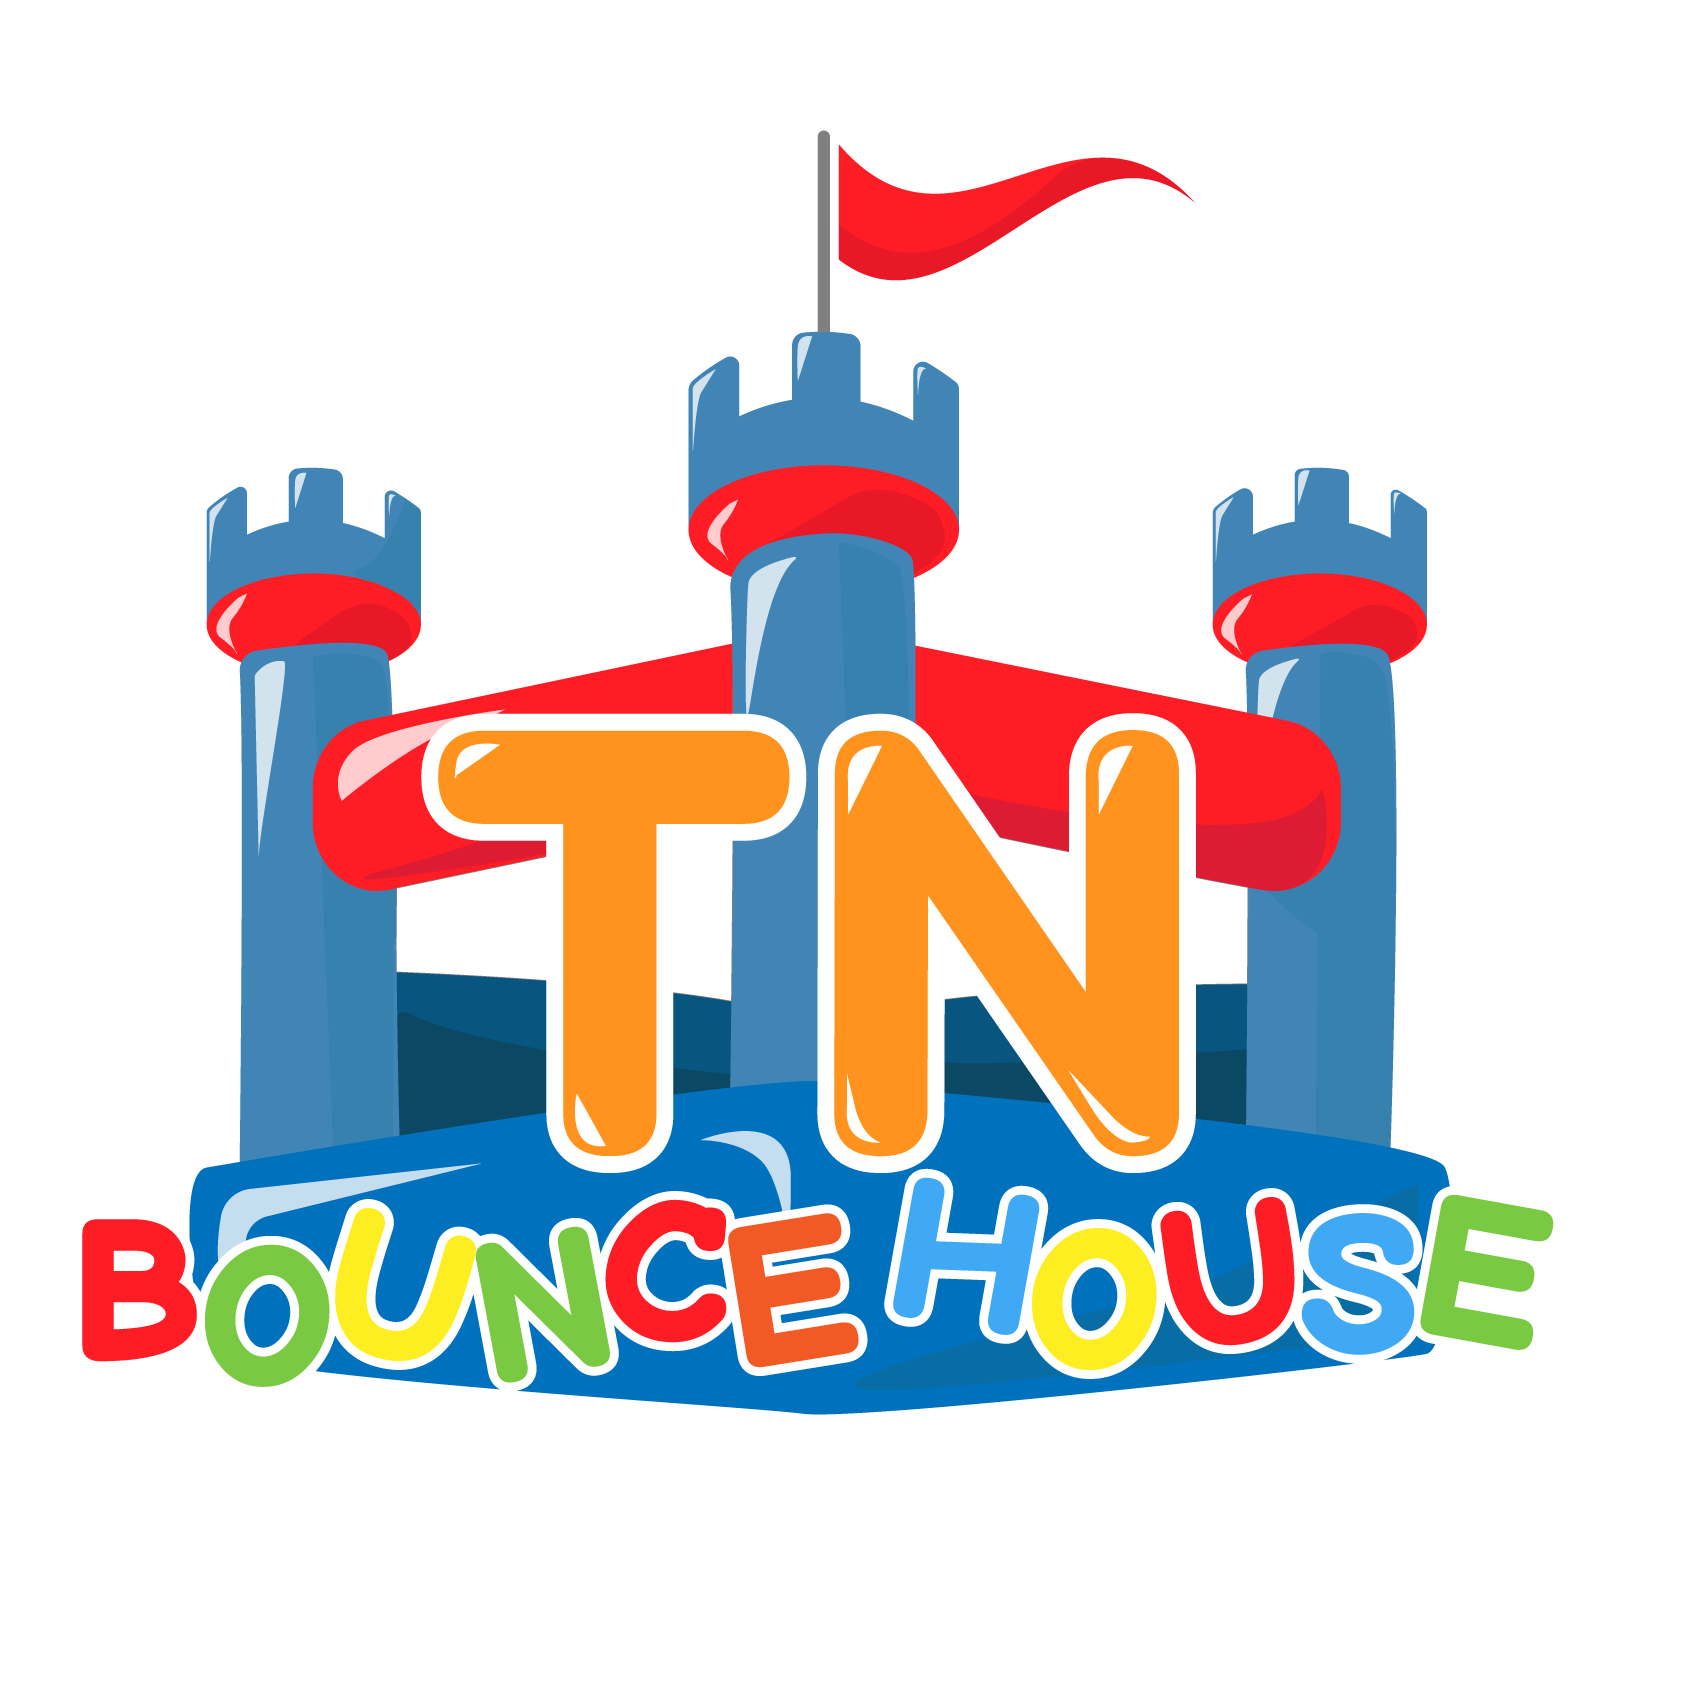 Tennessee Bounce House, LLC